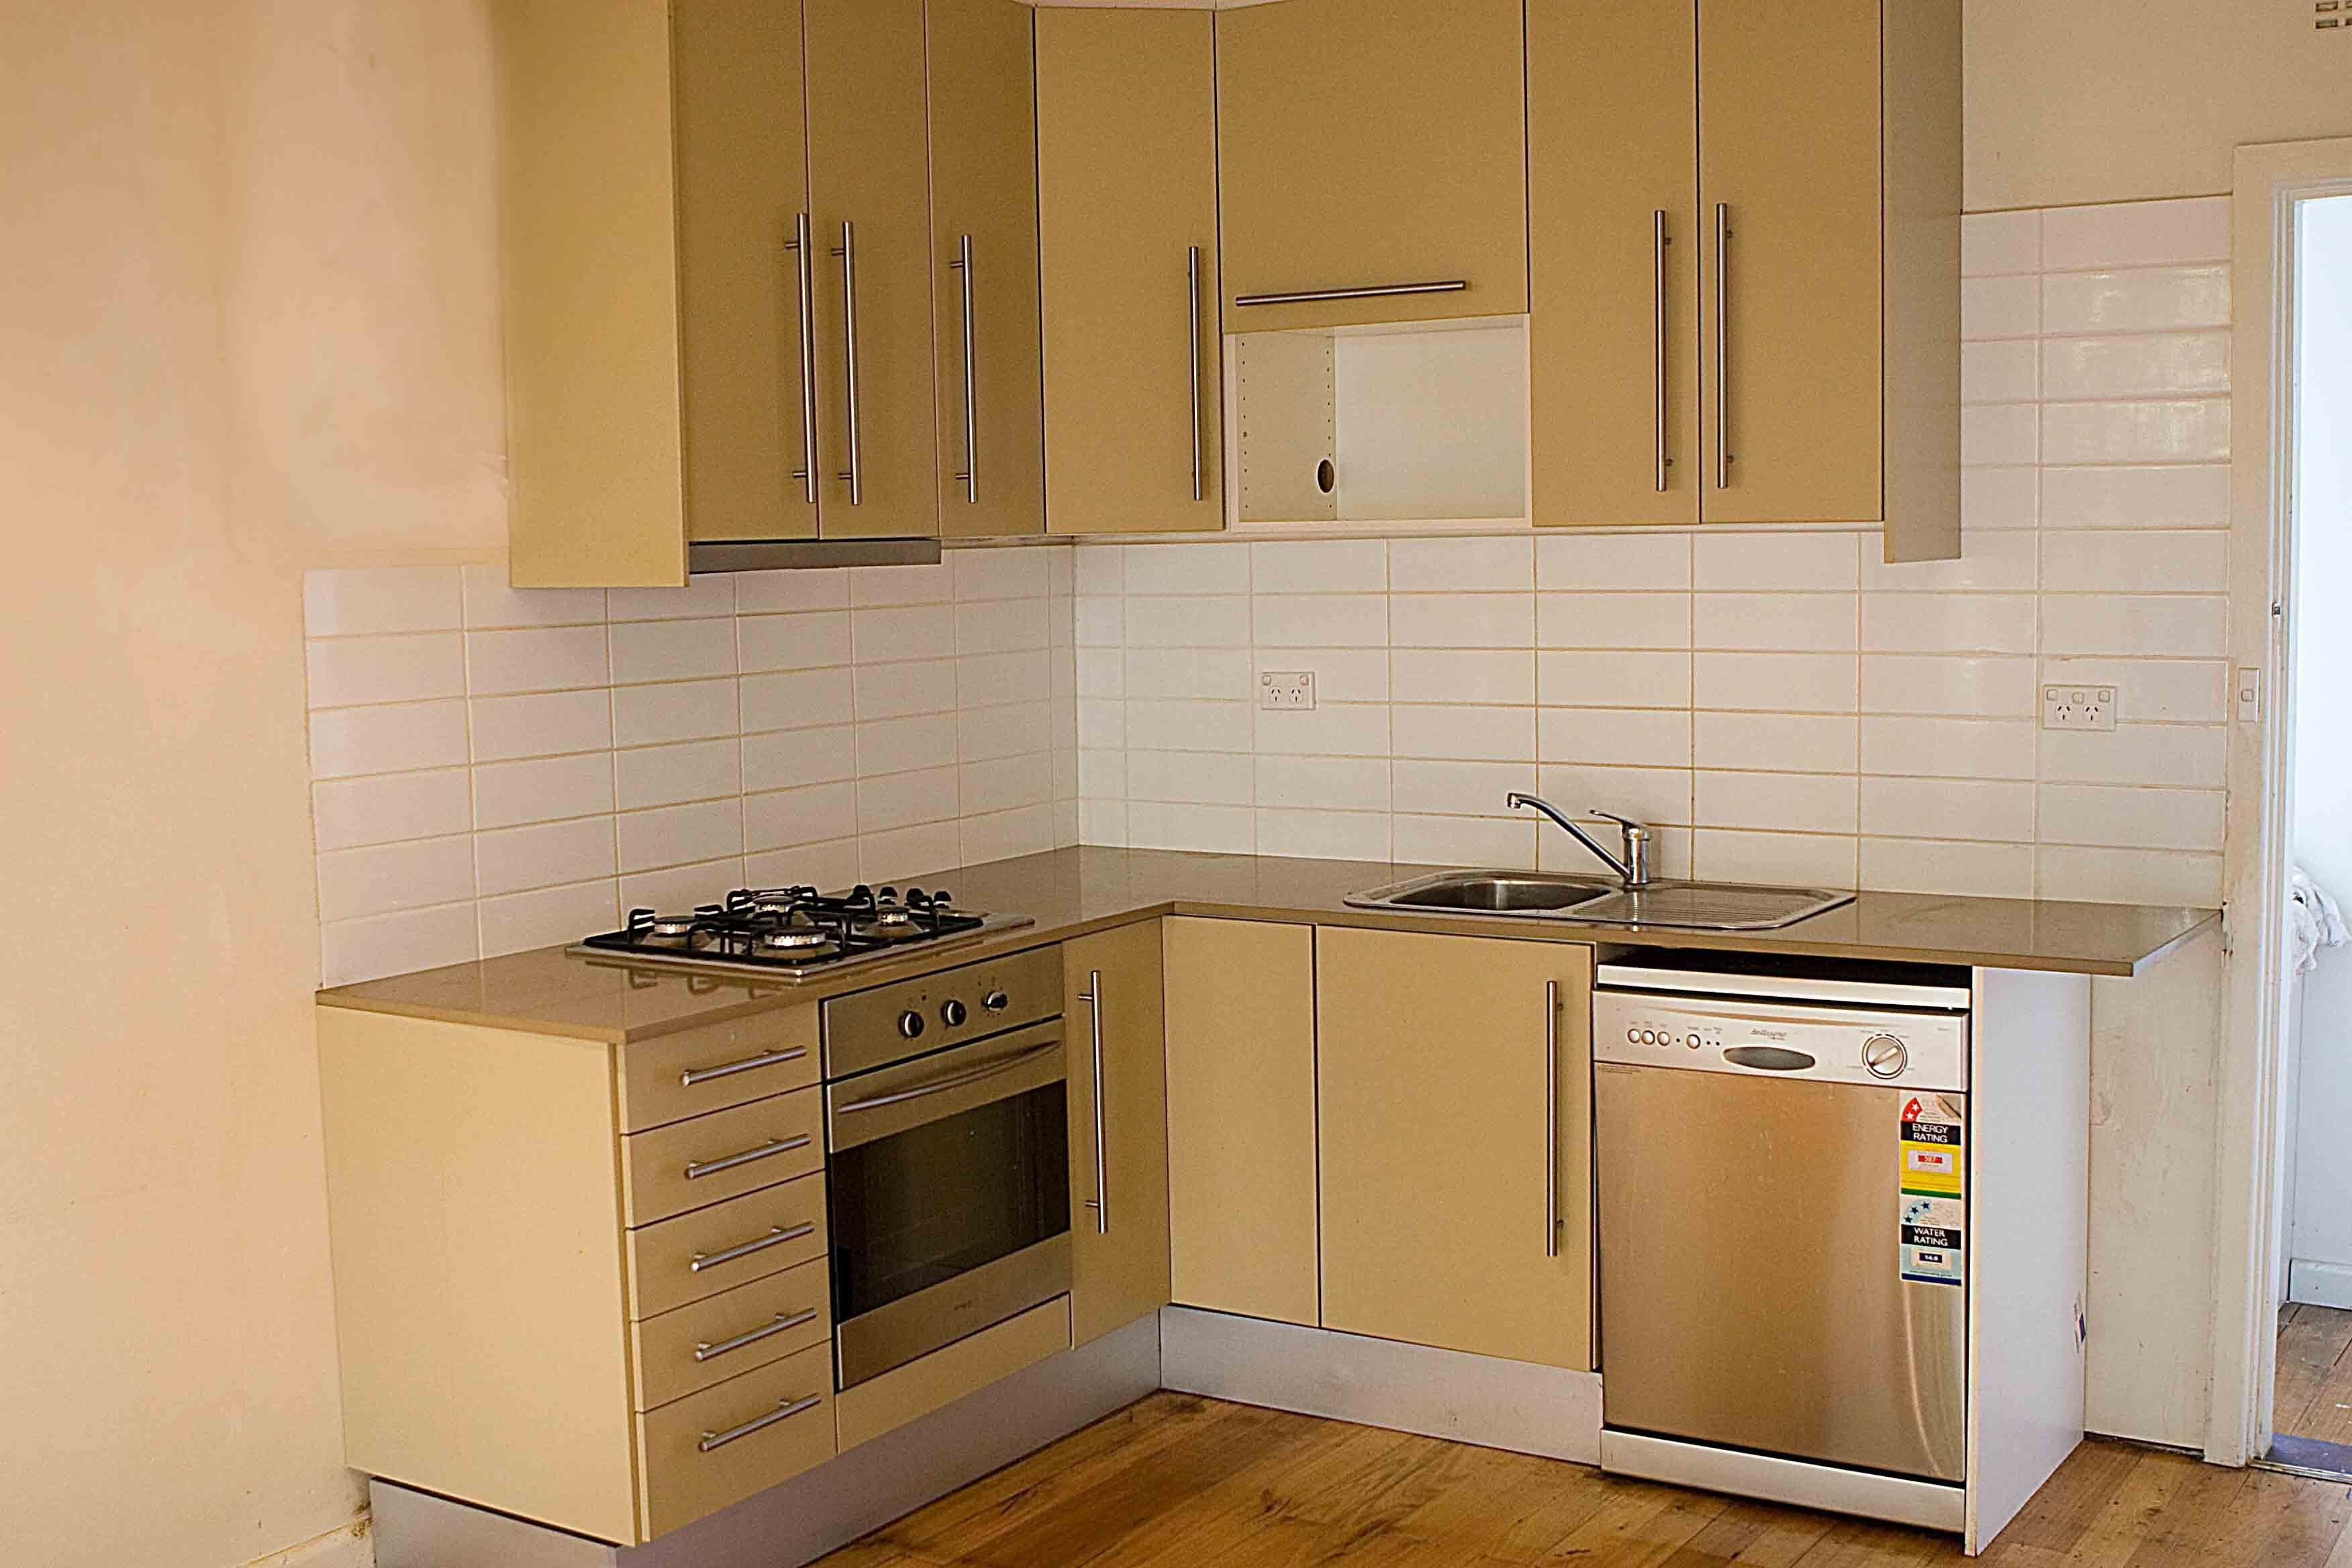 10 Why Selecting Greatest Kitchen Items For Small Kitchens Collections Openplankitche Small Modern Kitchens Small Kitchen Cabinet Design Small Space Kitchen